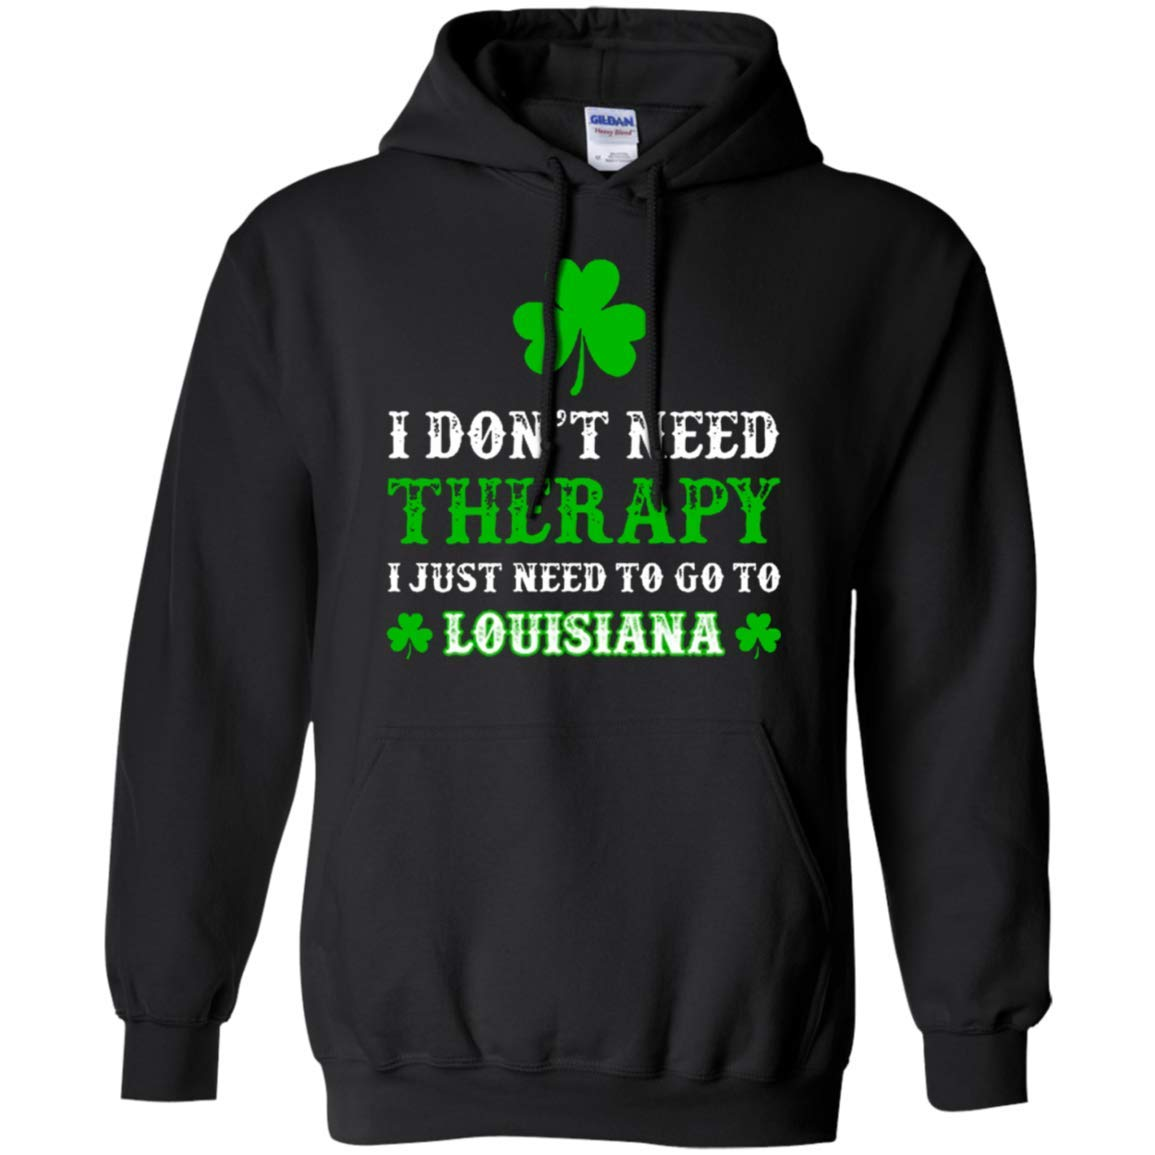 I Dont Need Therapy I Just Need to Go to Louisiana Irish Pullover Front Pockets Hoodie